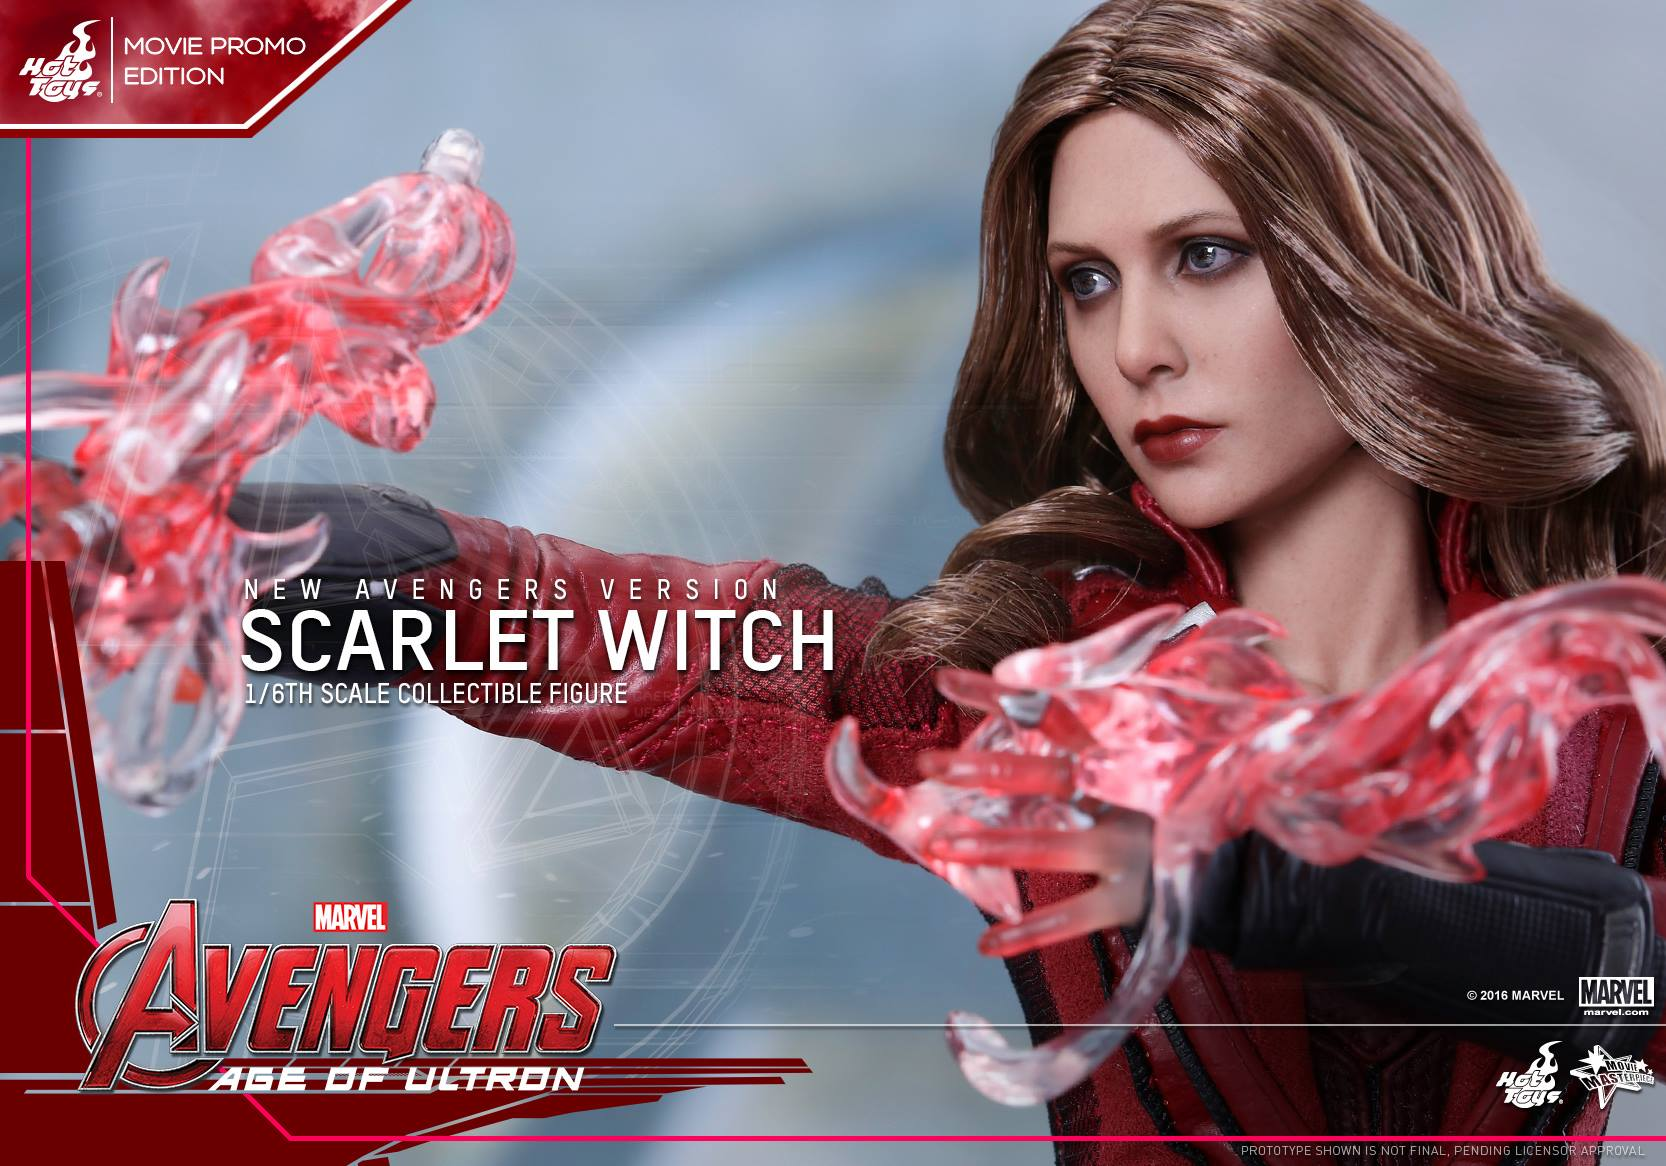 Hot Toys New Avengers Scarlet Witch Sixth Scale Figure